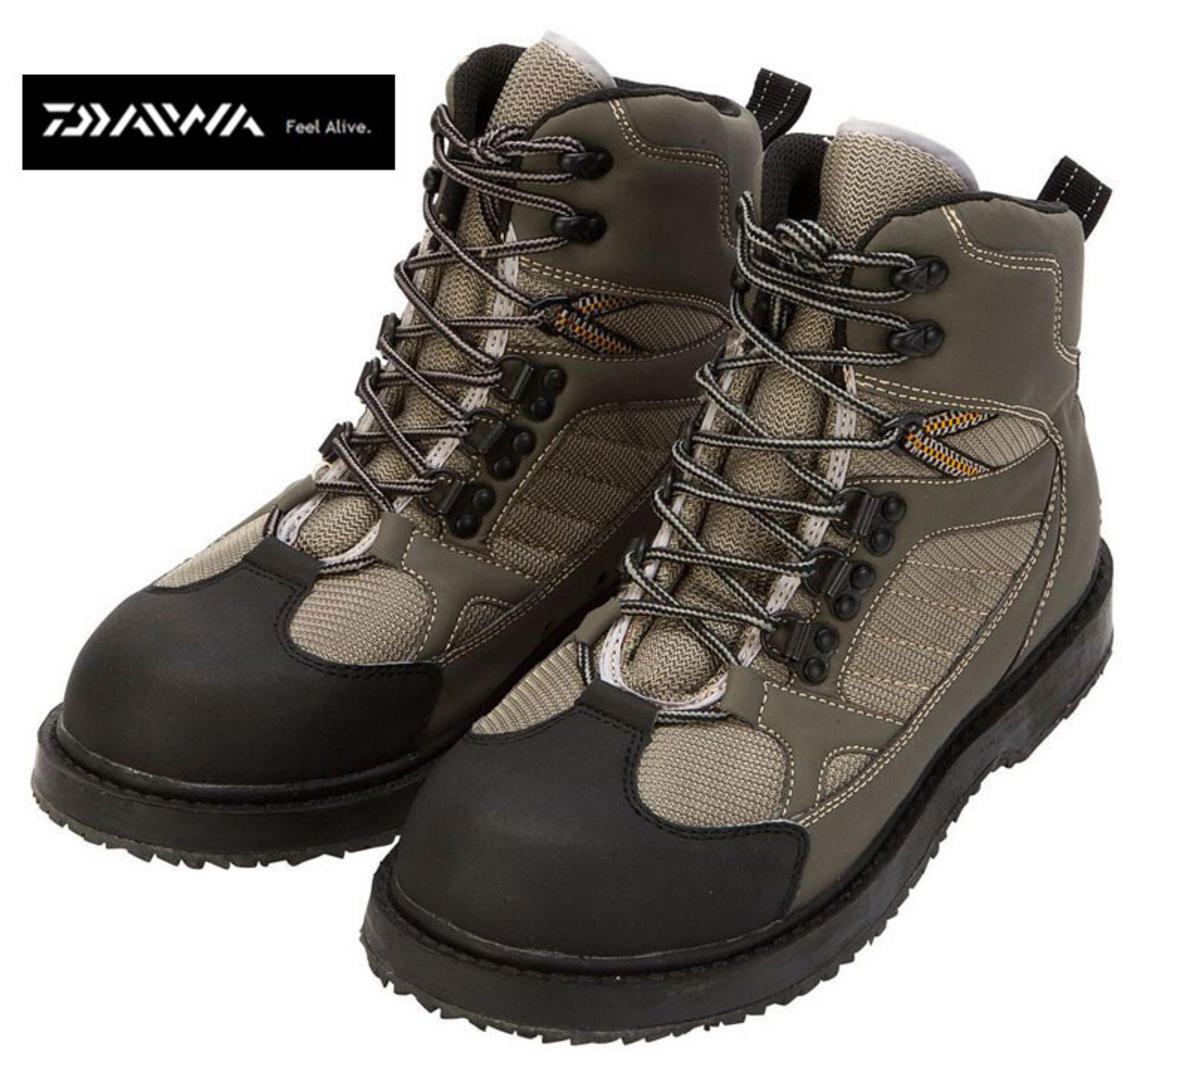 Daiwa Versa Grip Wading Boots - All Sizes Available - DVGWB